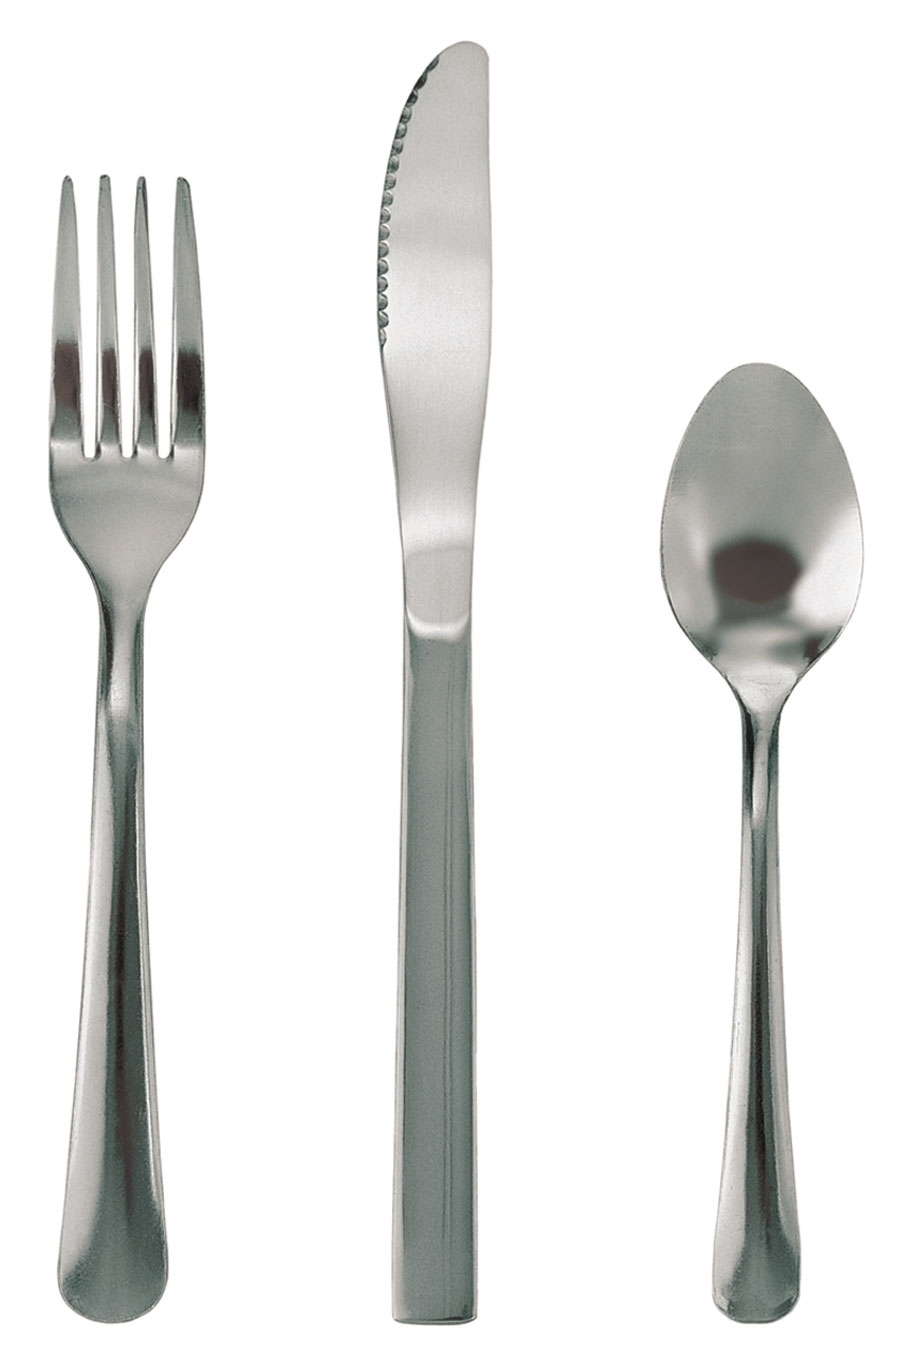 WM-31 Update International - Teaspoon, 18/0 stainless steel, medium weight, Windsor